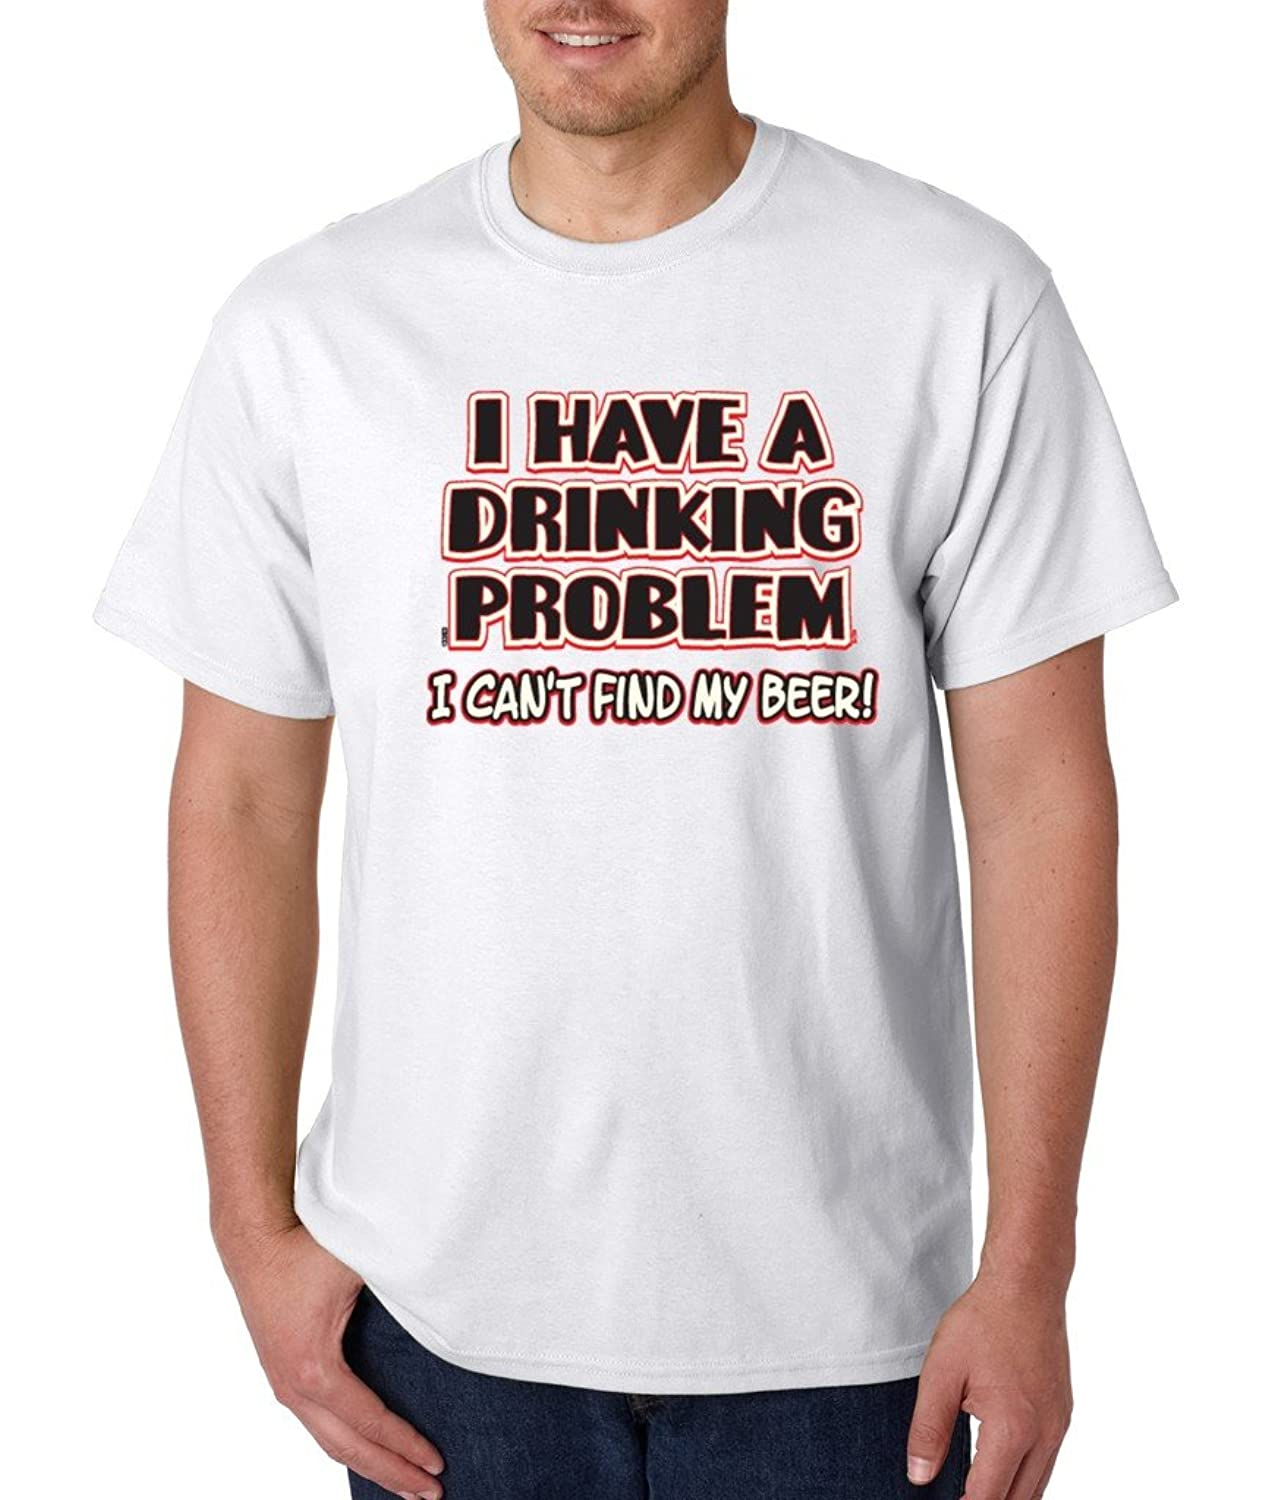 I Have a Drinking Problem T-shirt Funny Beer Drinking Shirts